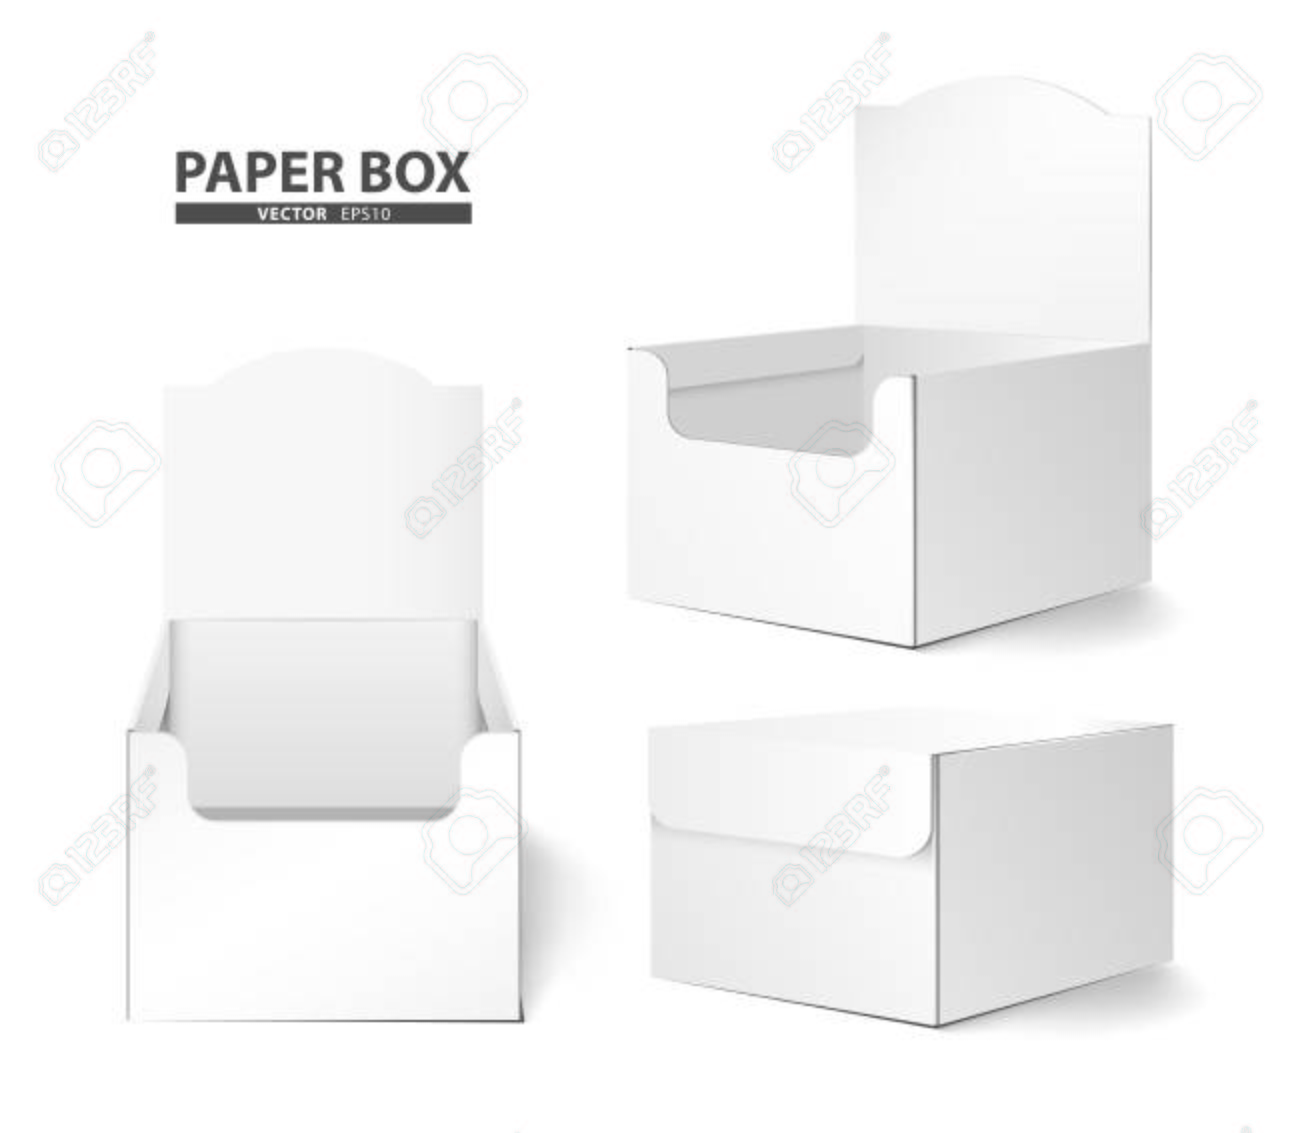 Creative Paper Box Design Package On White Background Stock Vector